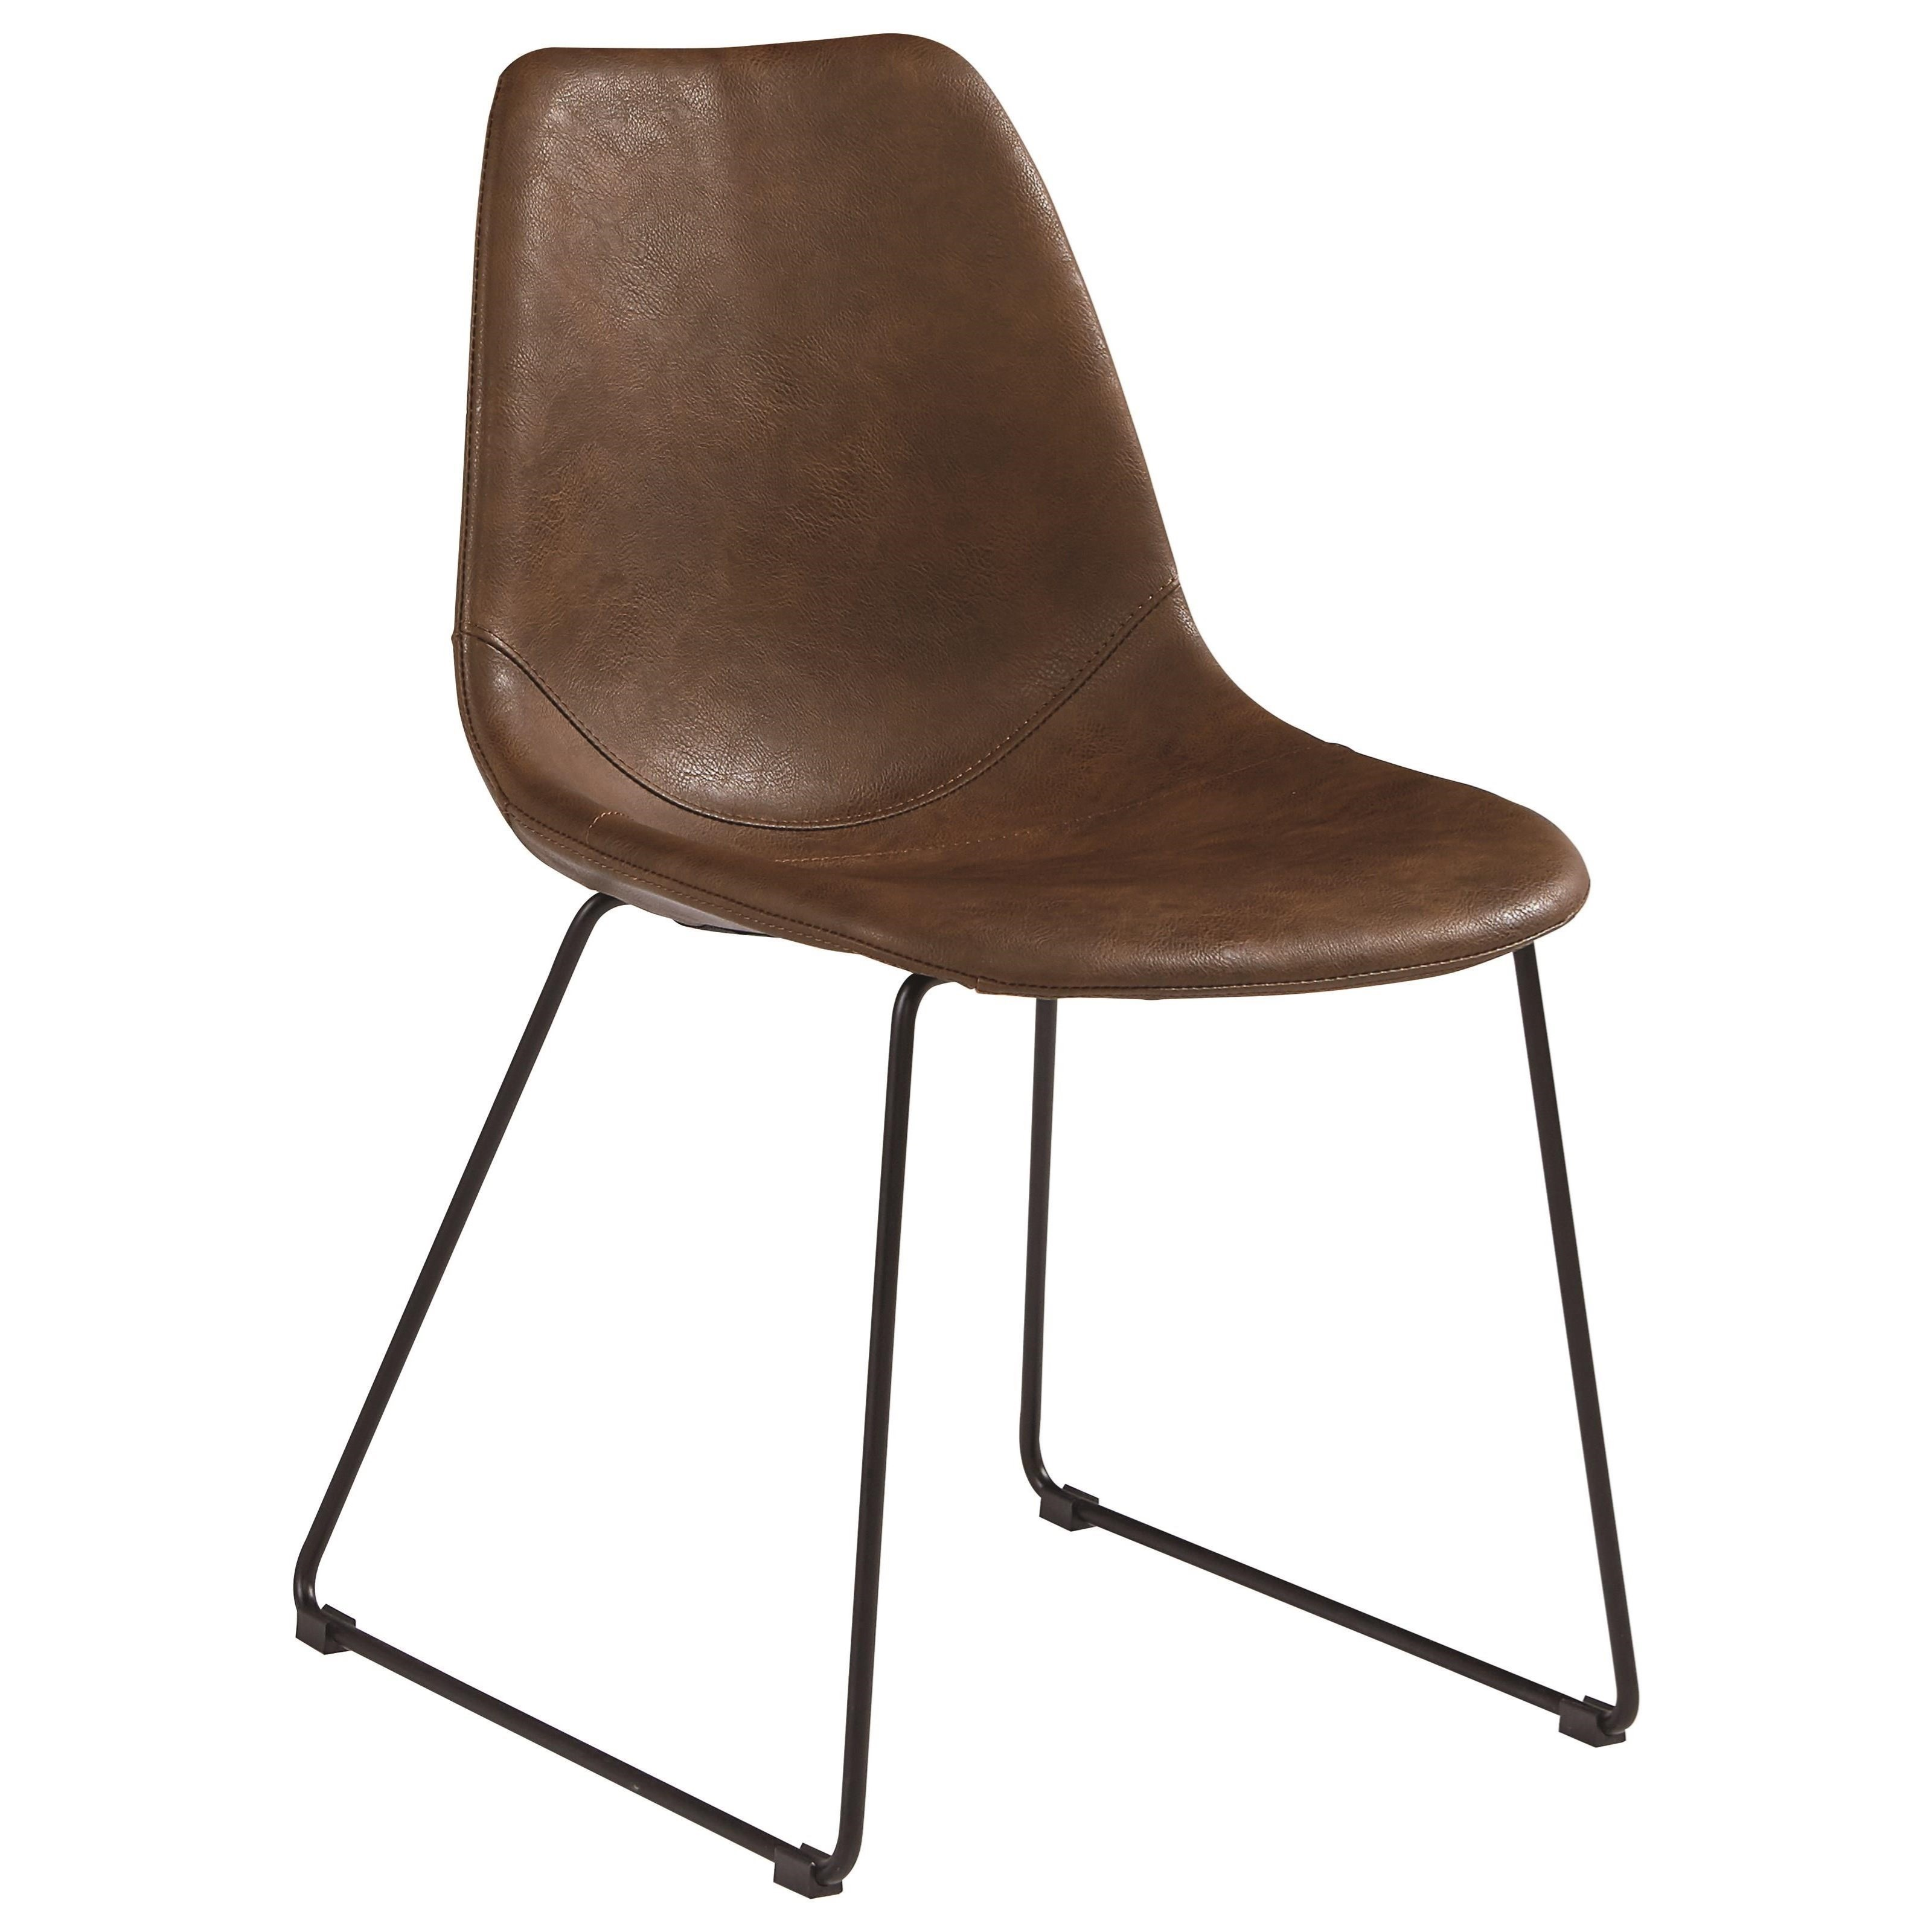 Magnolia Home By Joanna Gaines Boho Molded Shell Side Chair With Brown PU  Leather Like Fabric   Great American Home Store   Dining Side Chairs